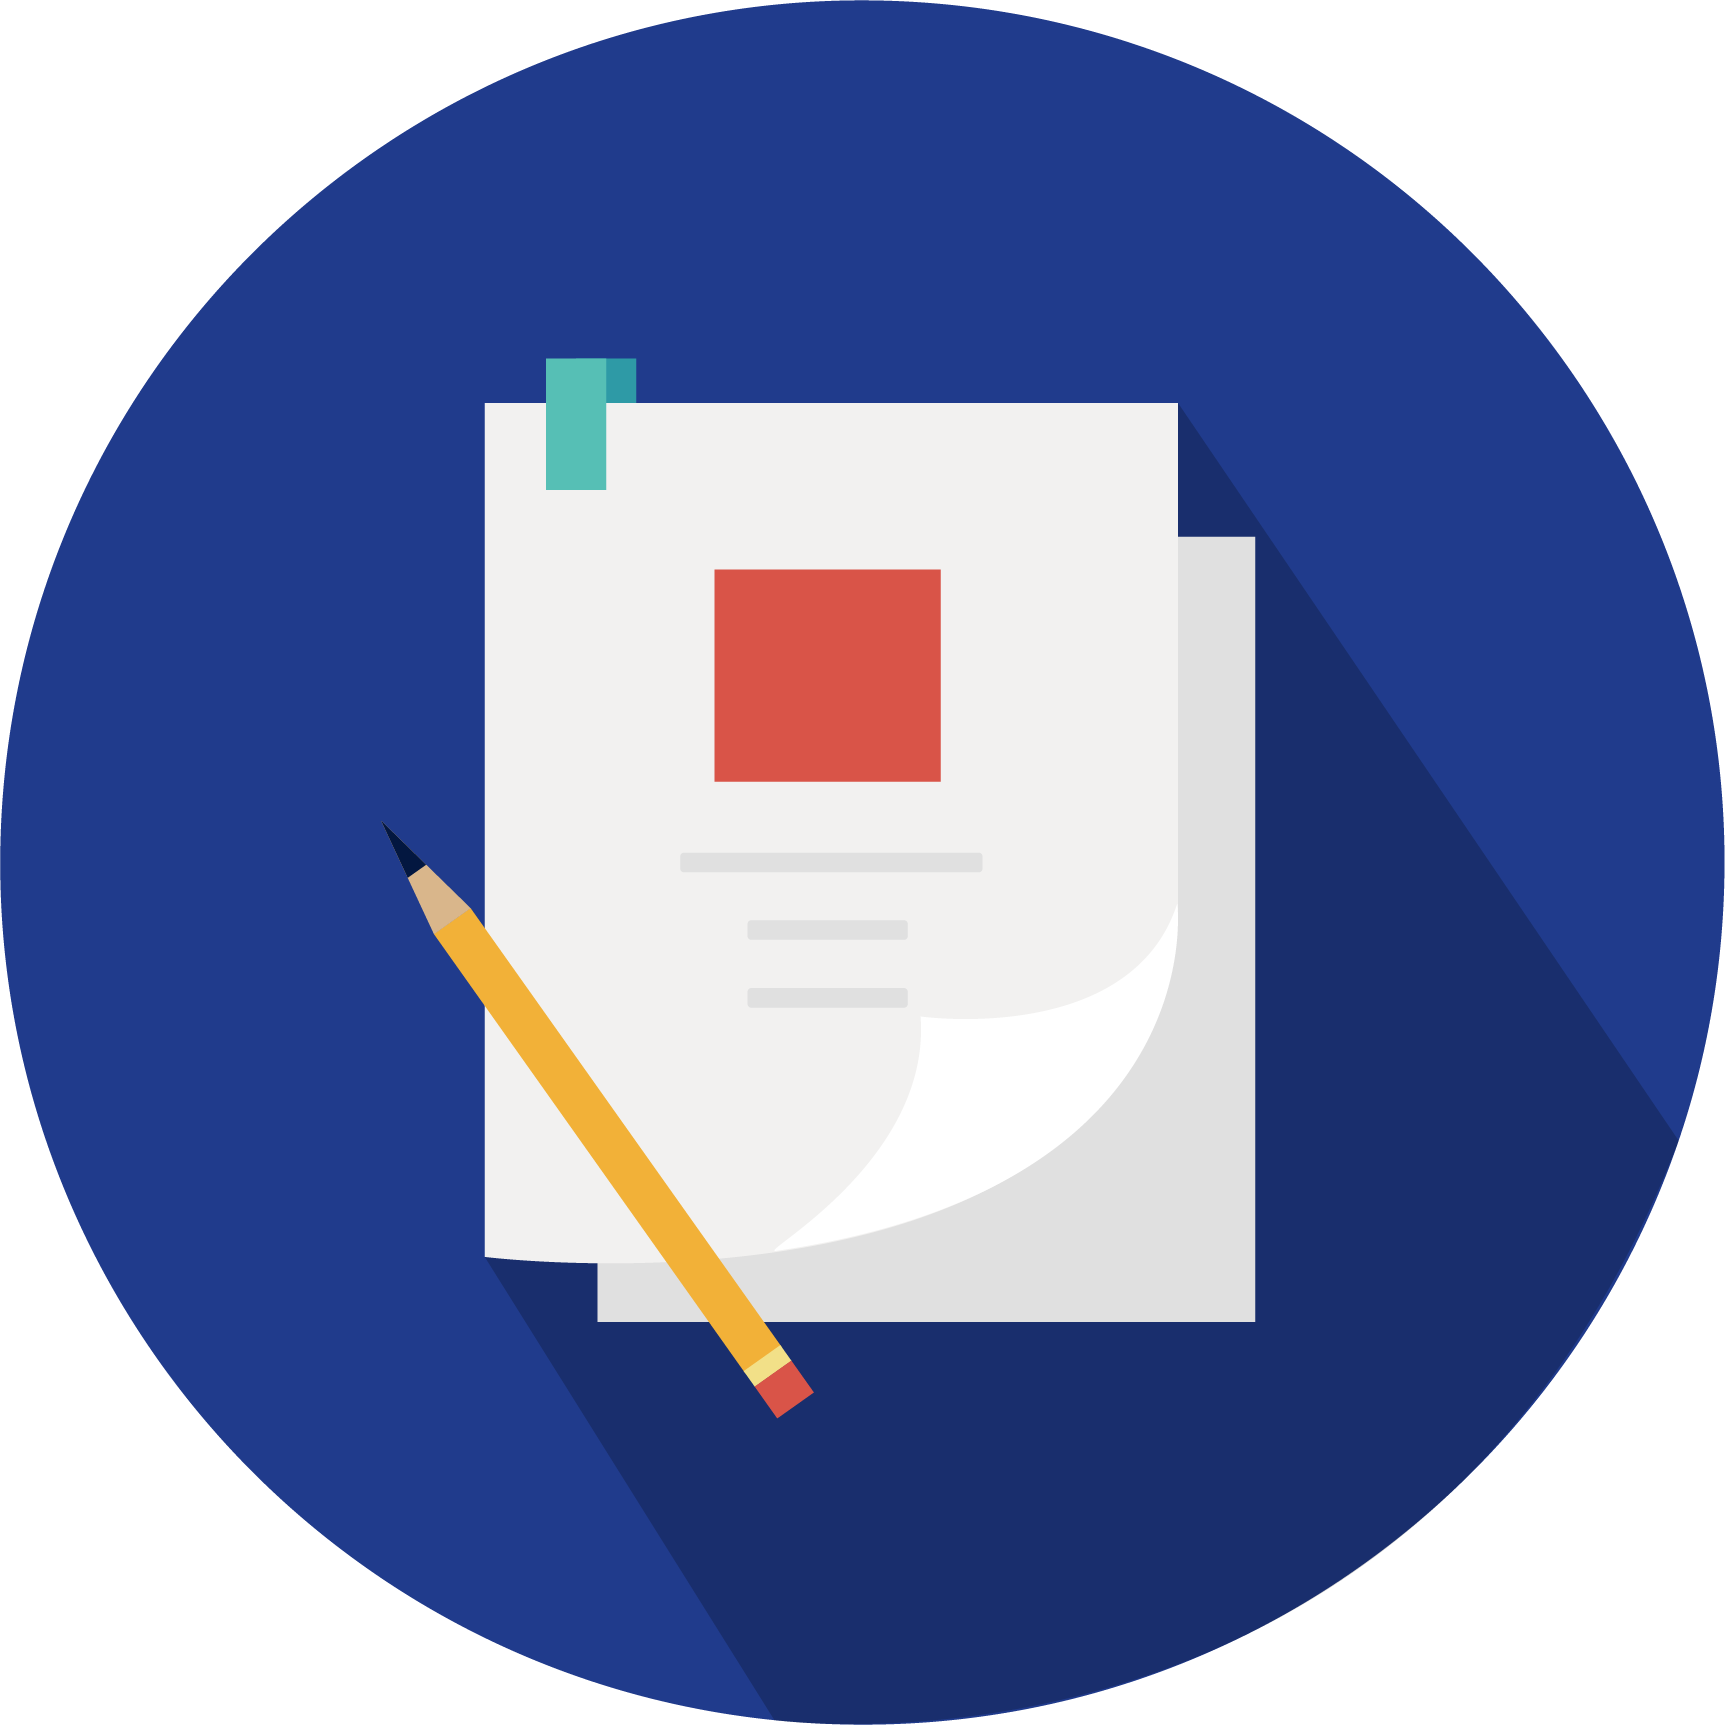 Icon of two pieces of paper stacked with a pencil at the bottom